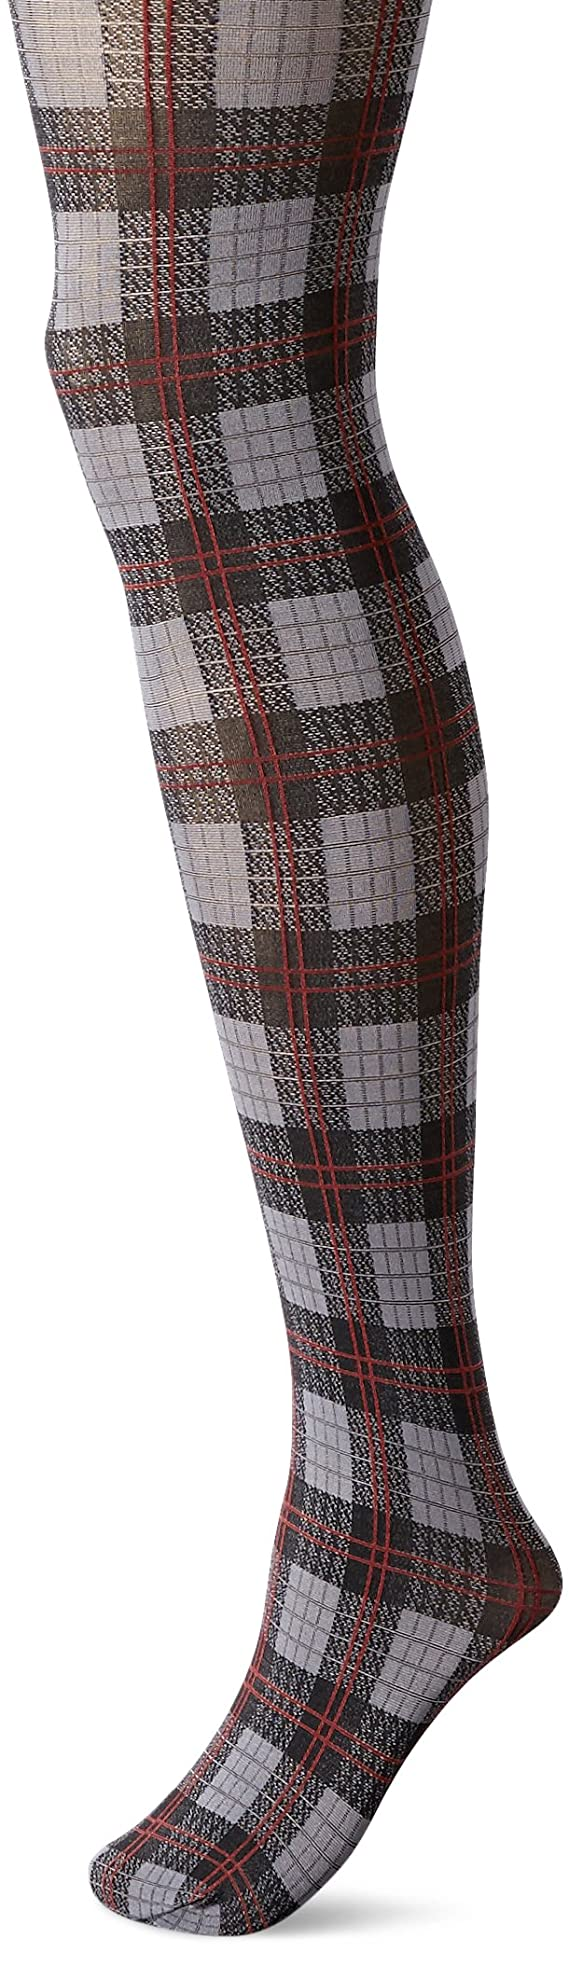 Hue Women's English Plaid Tights with Control Top